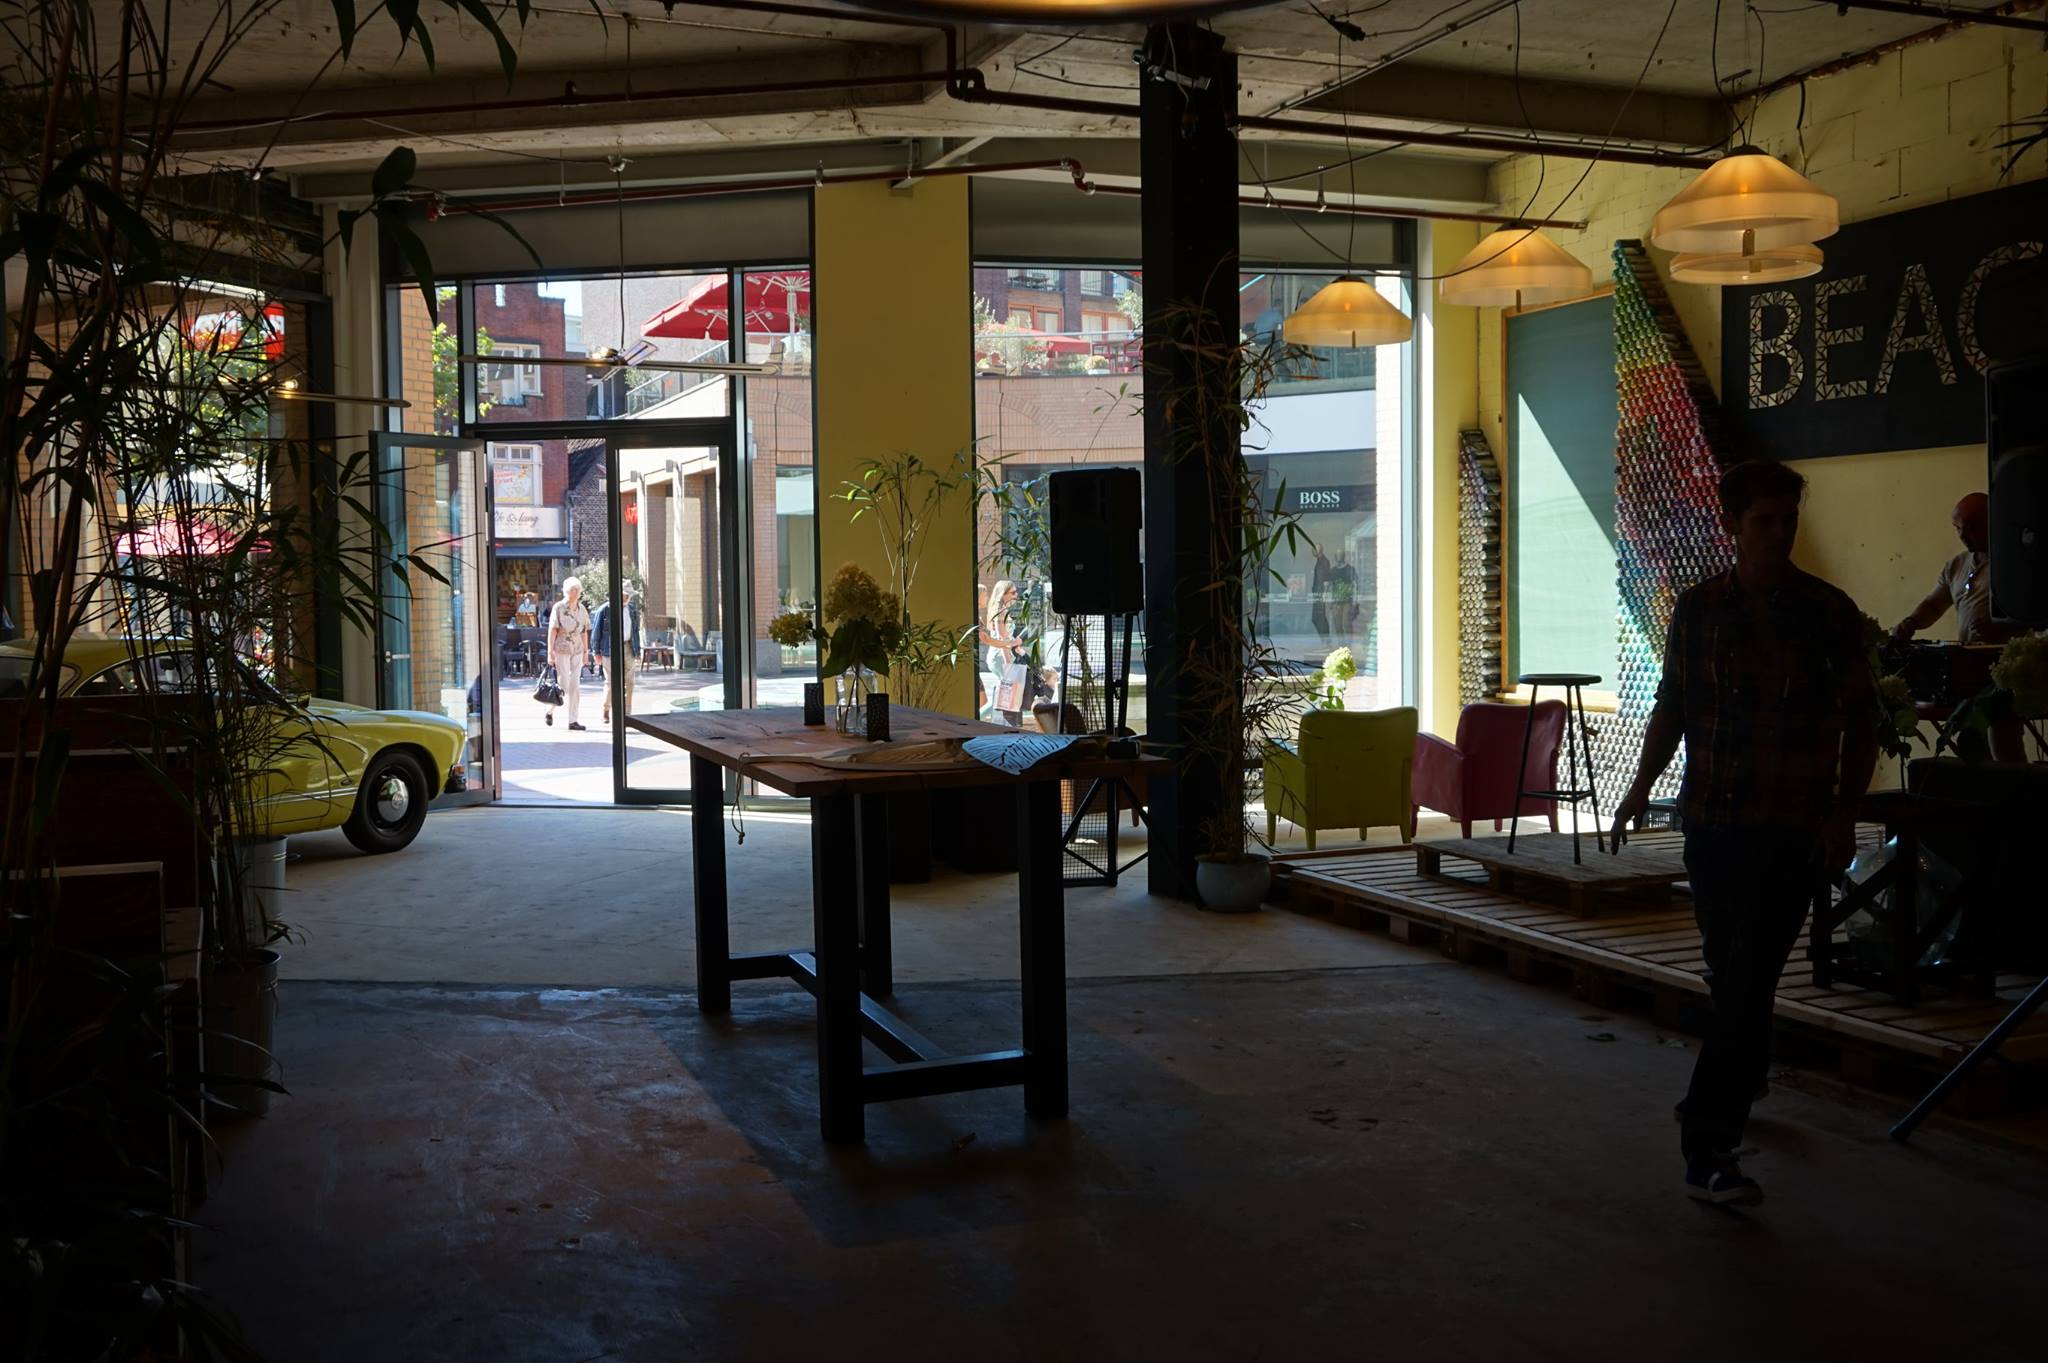 - Sandy floor, Street Art design and a relaxed atmosphere invite the shoppers to chill out.